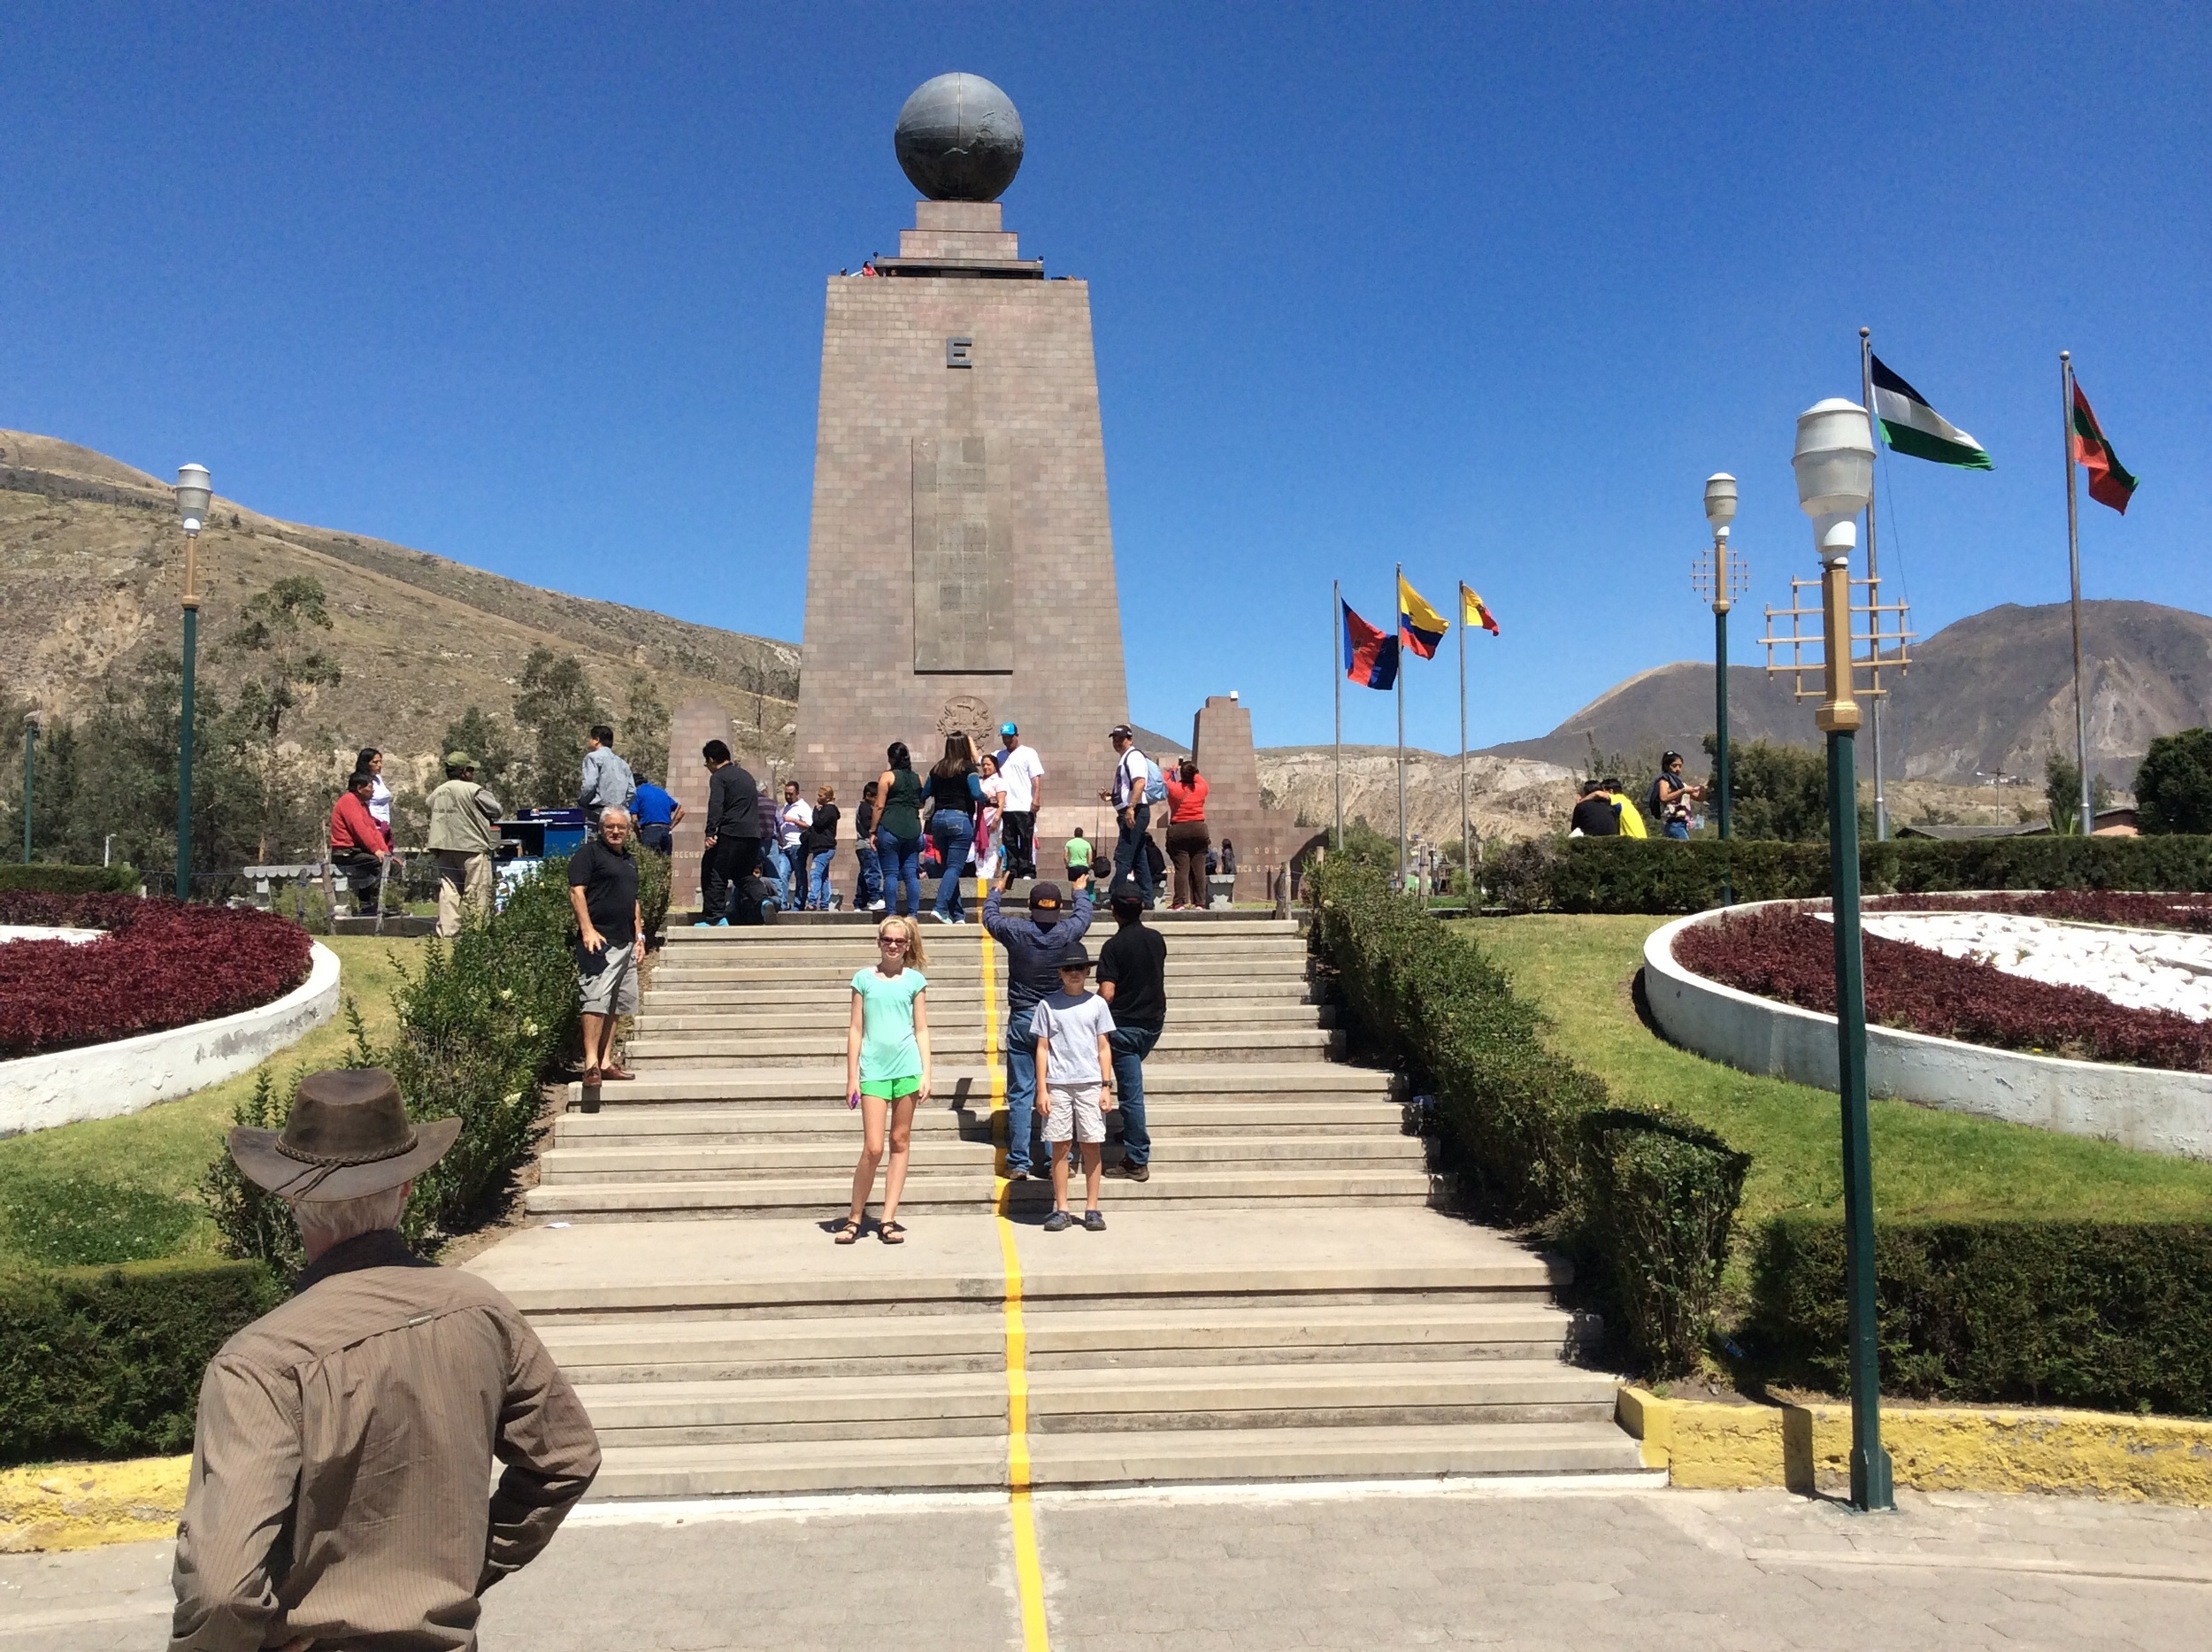 The fake Equator with the monument